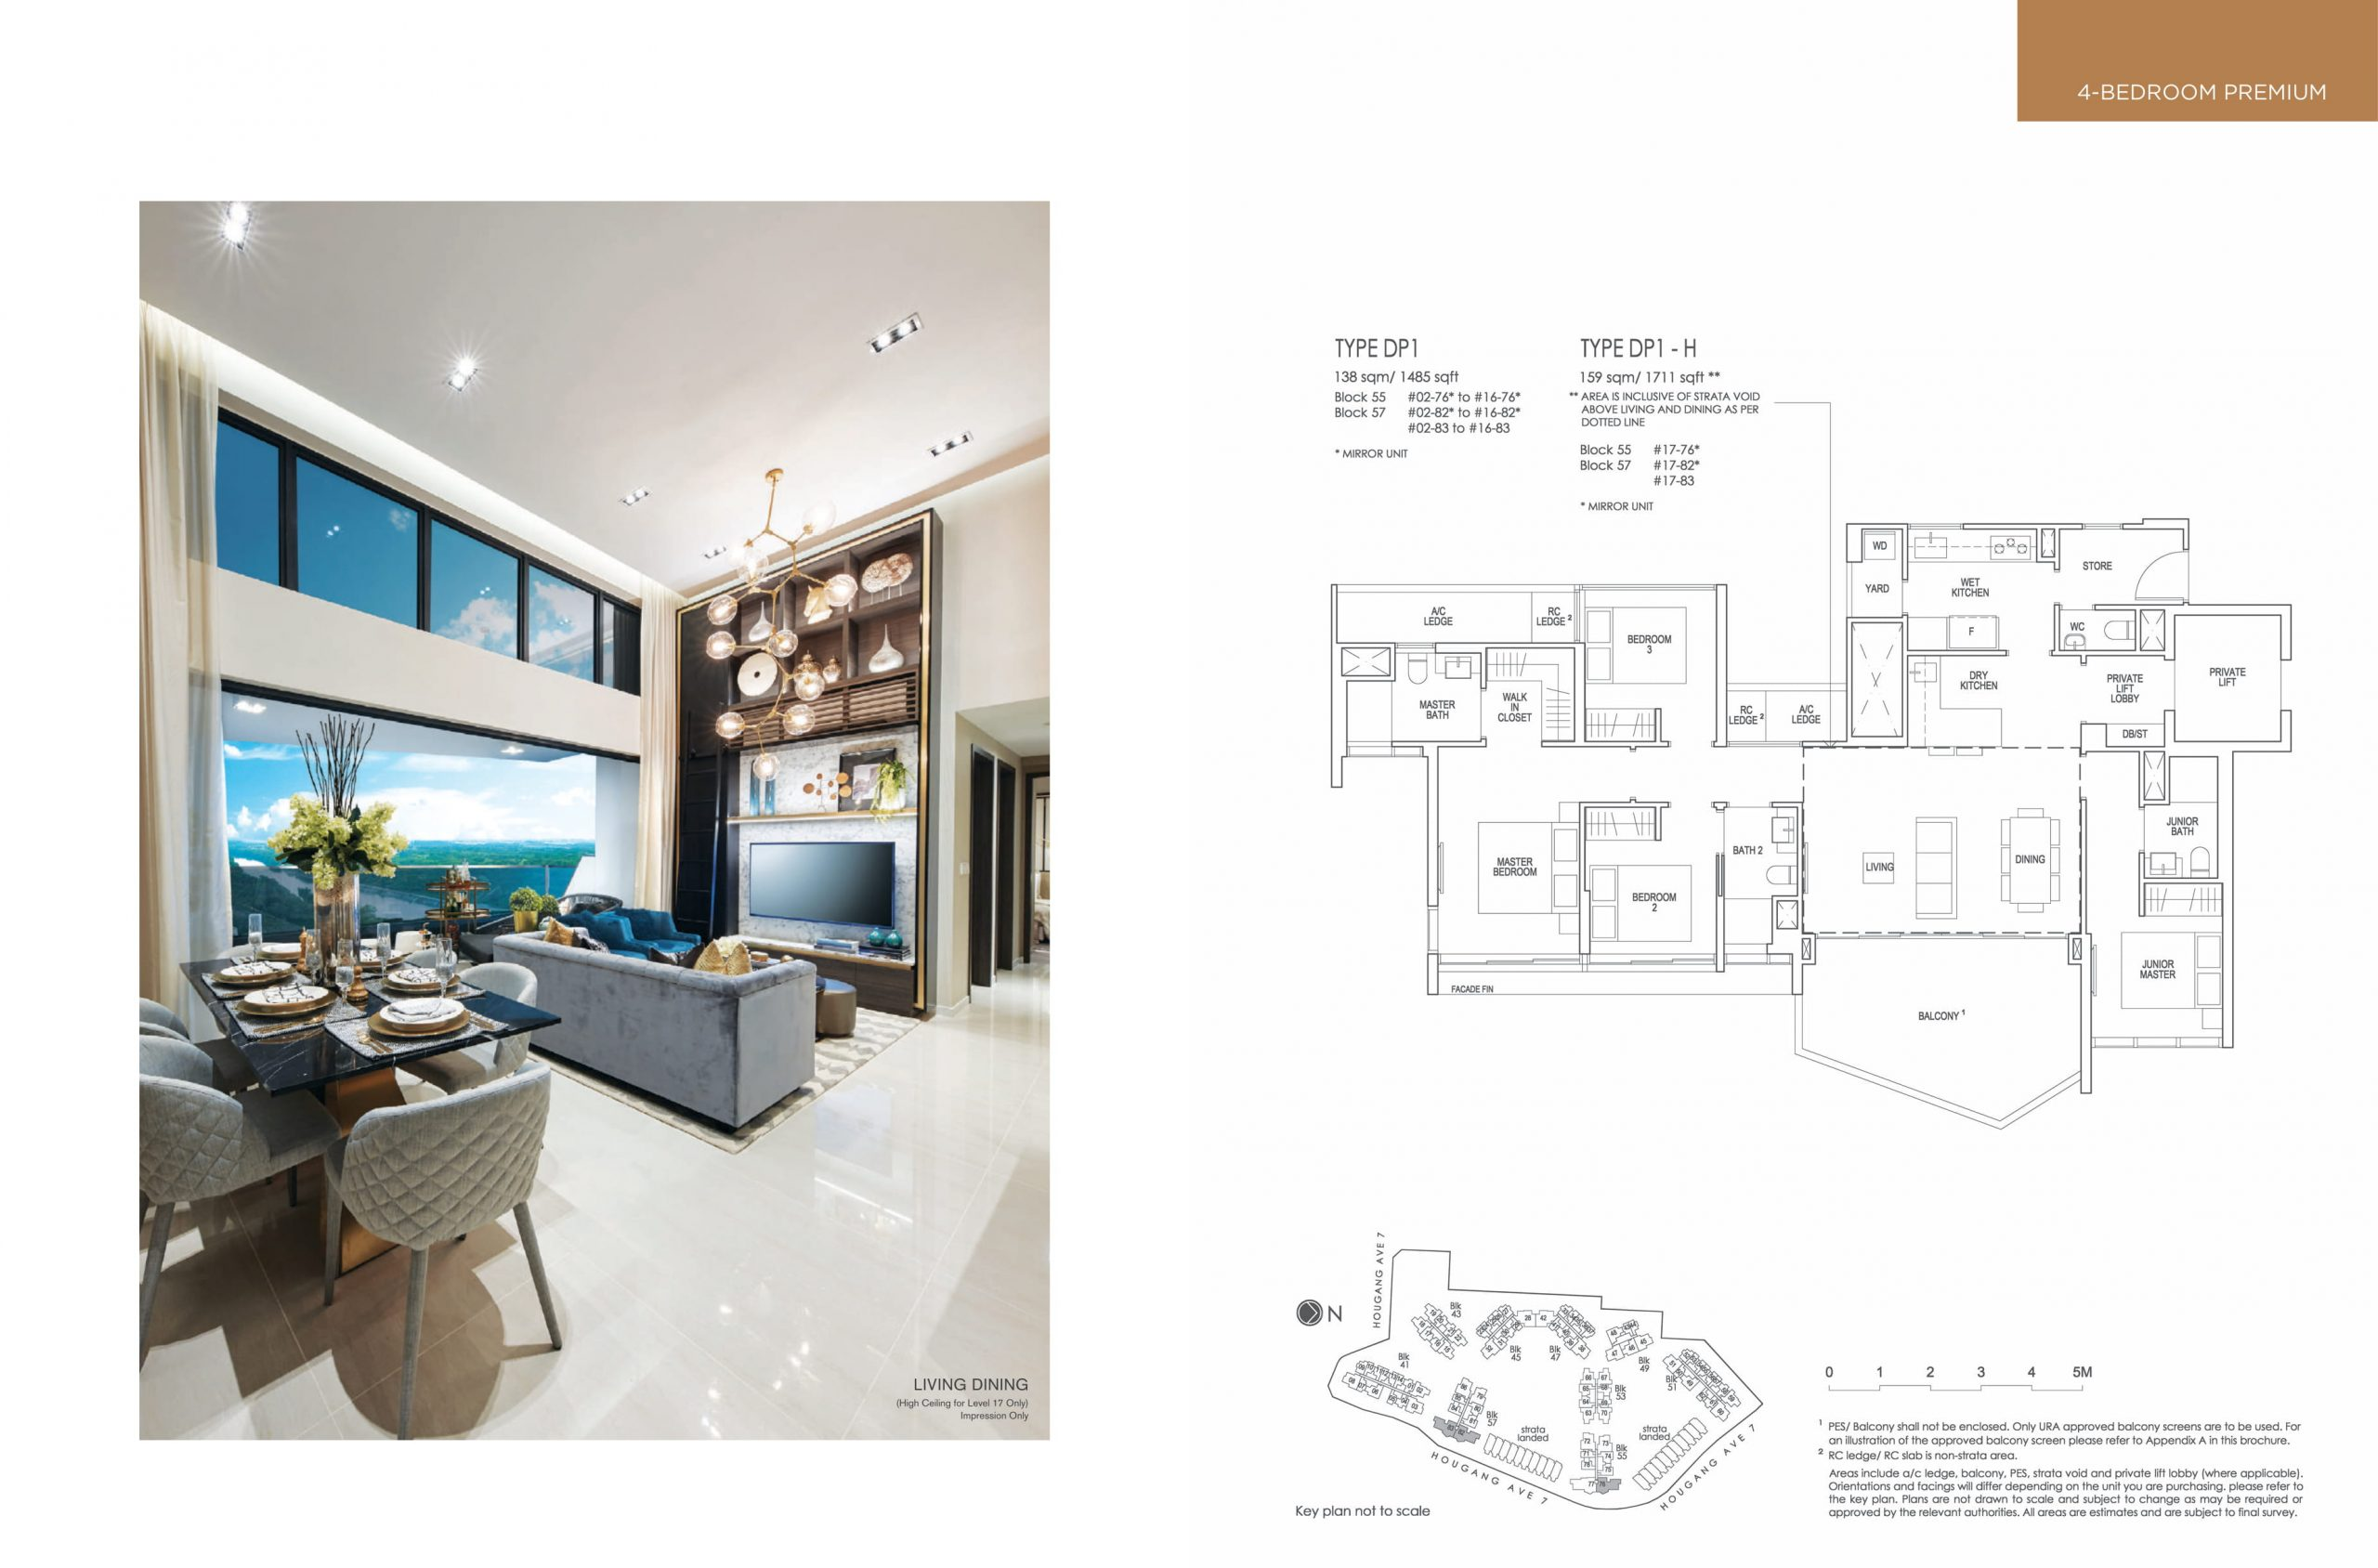 The Riverfront Residences' four-bedroom and four-bedroom premium types